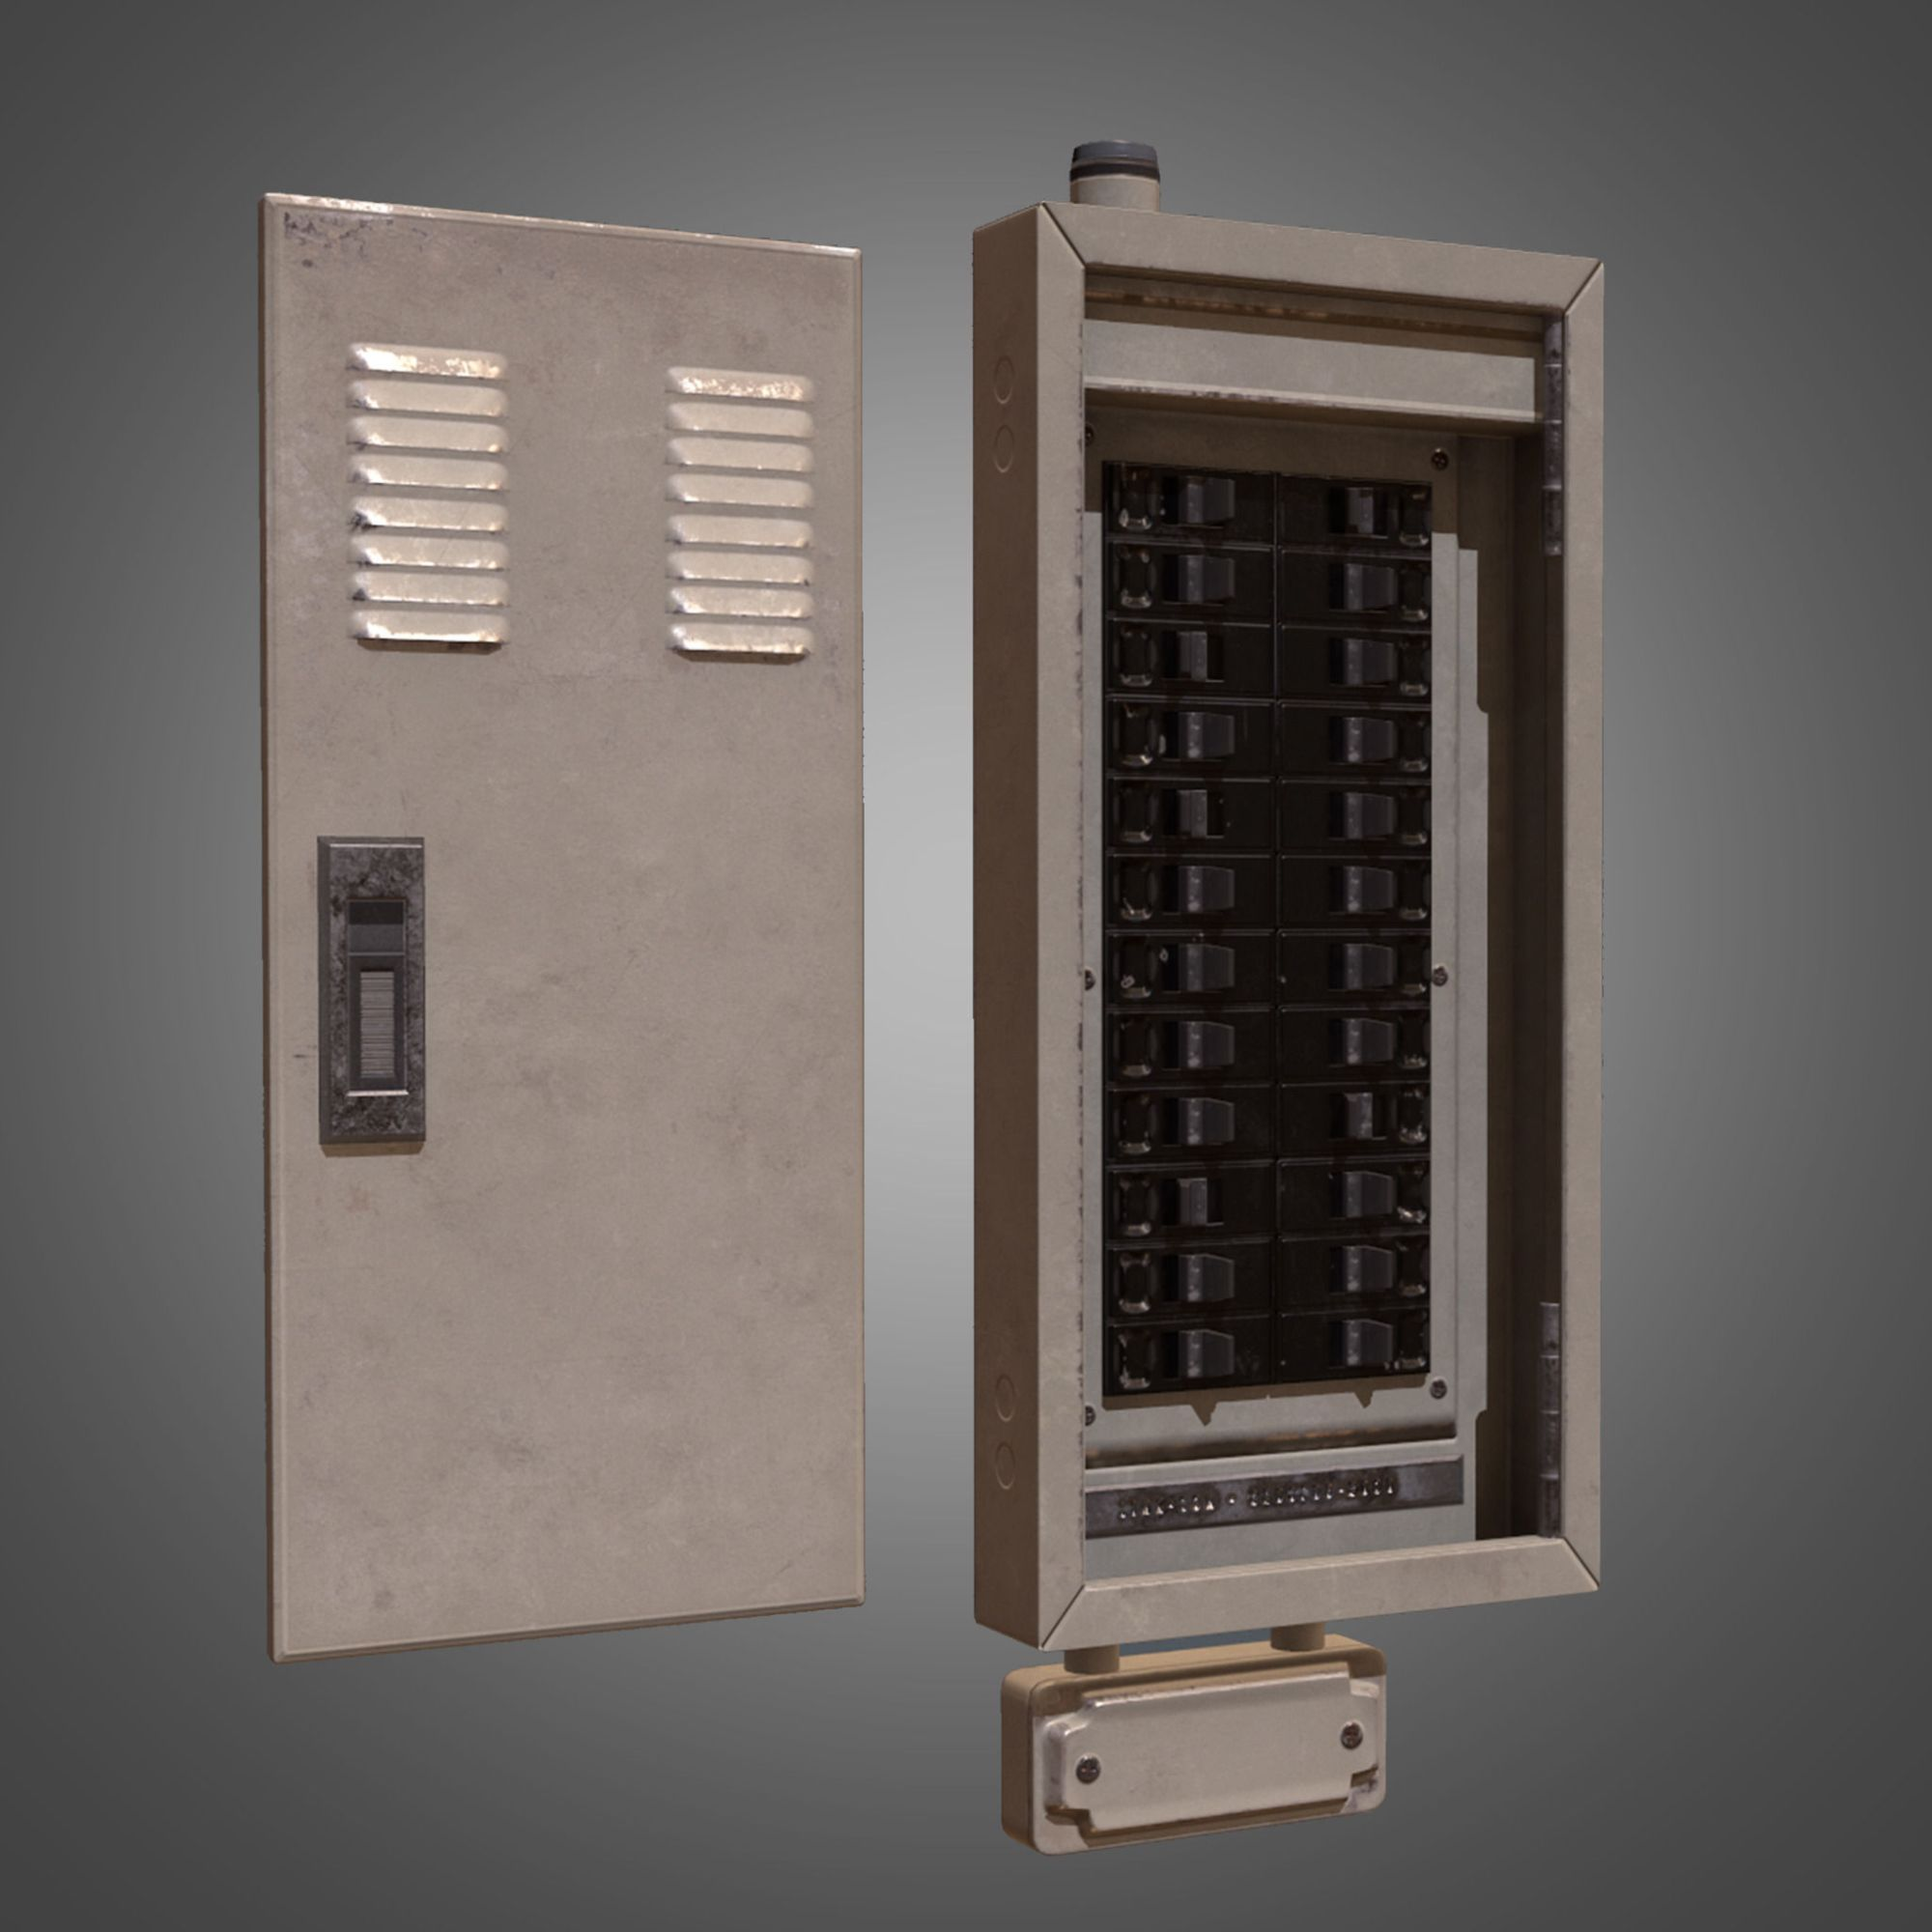 hight resolution of electrical fuse box pbr game ready low poly 3d model